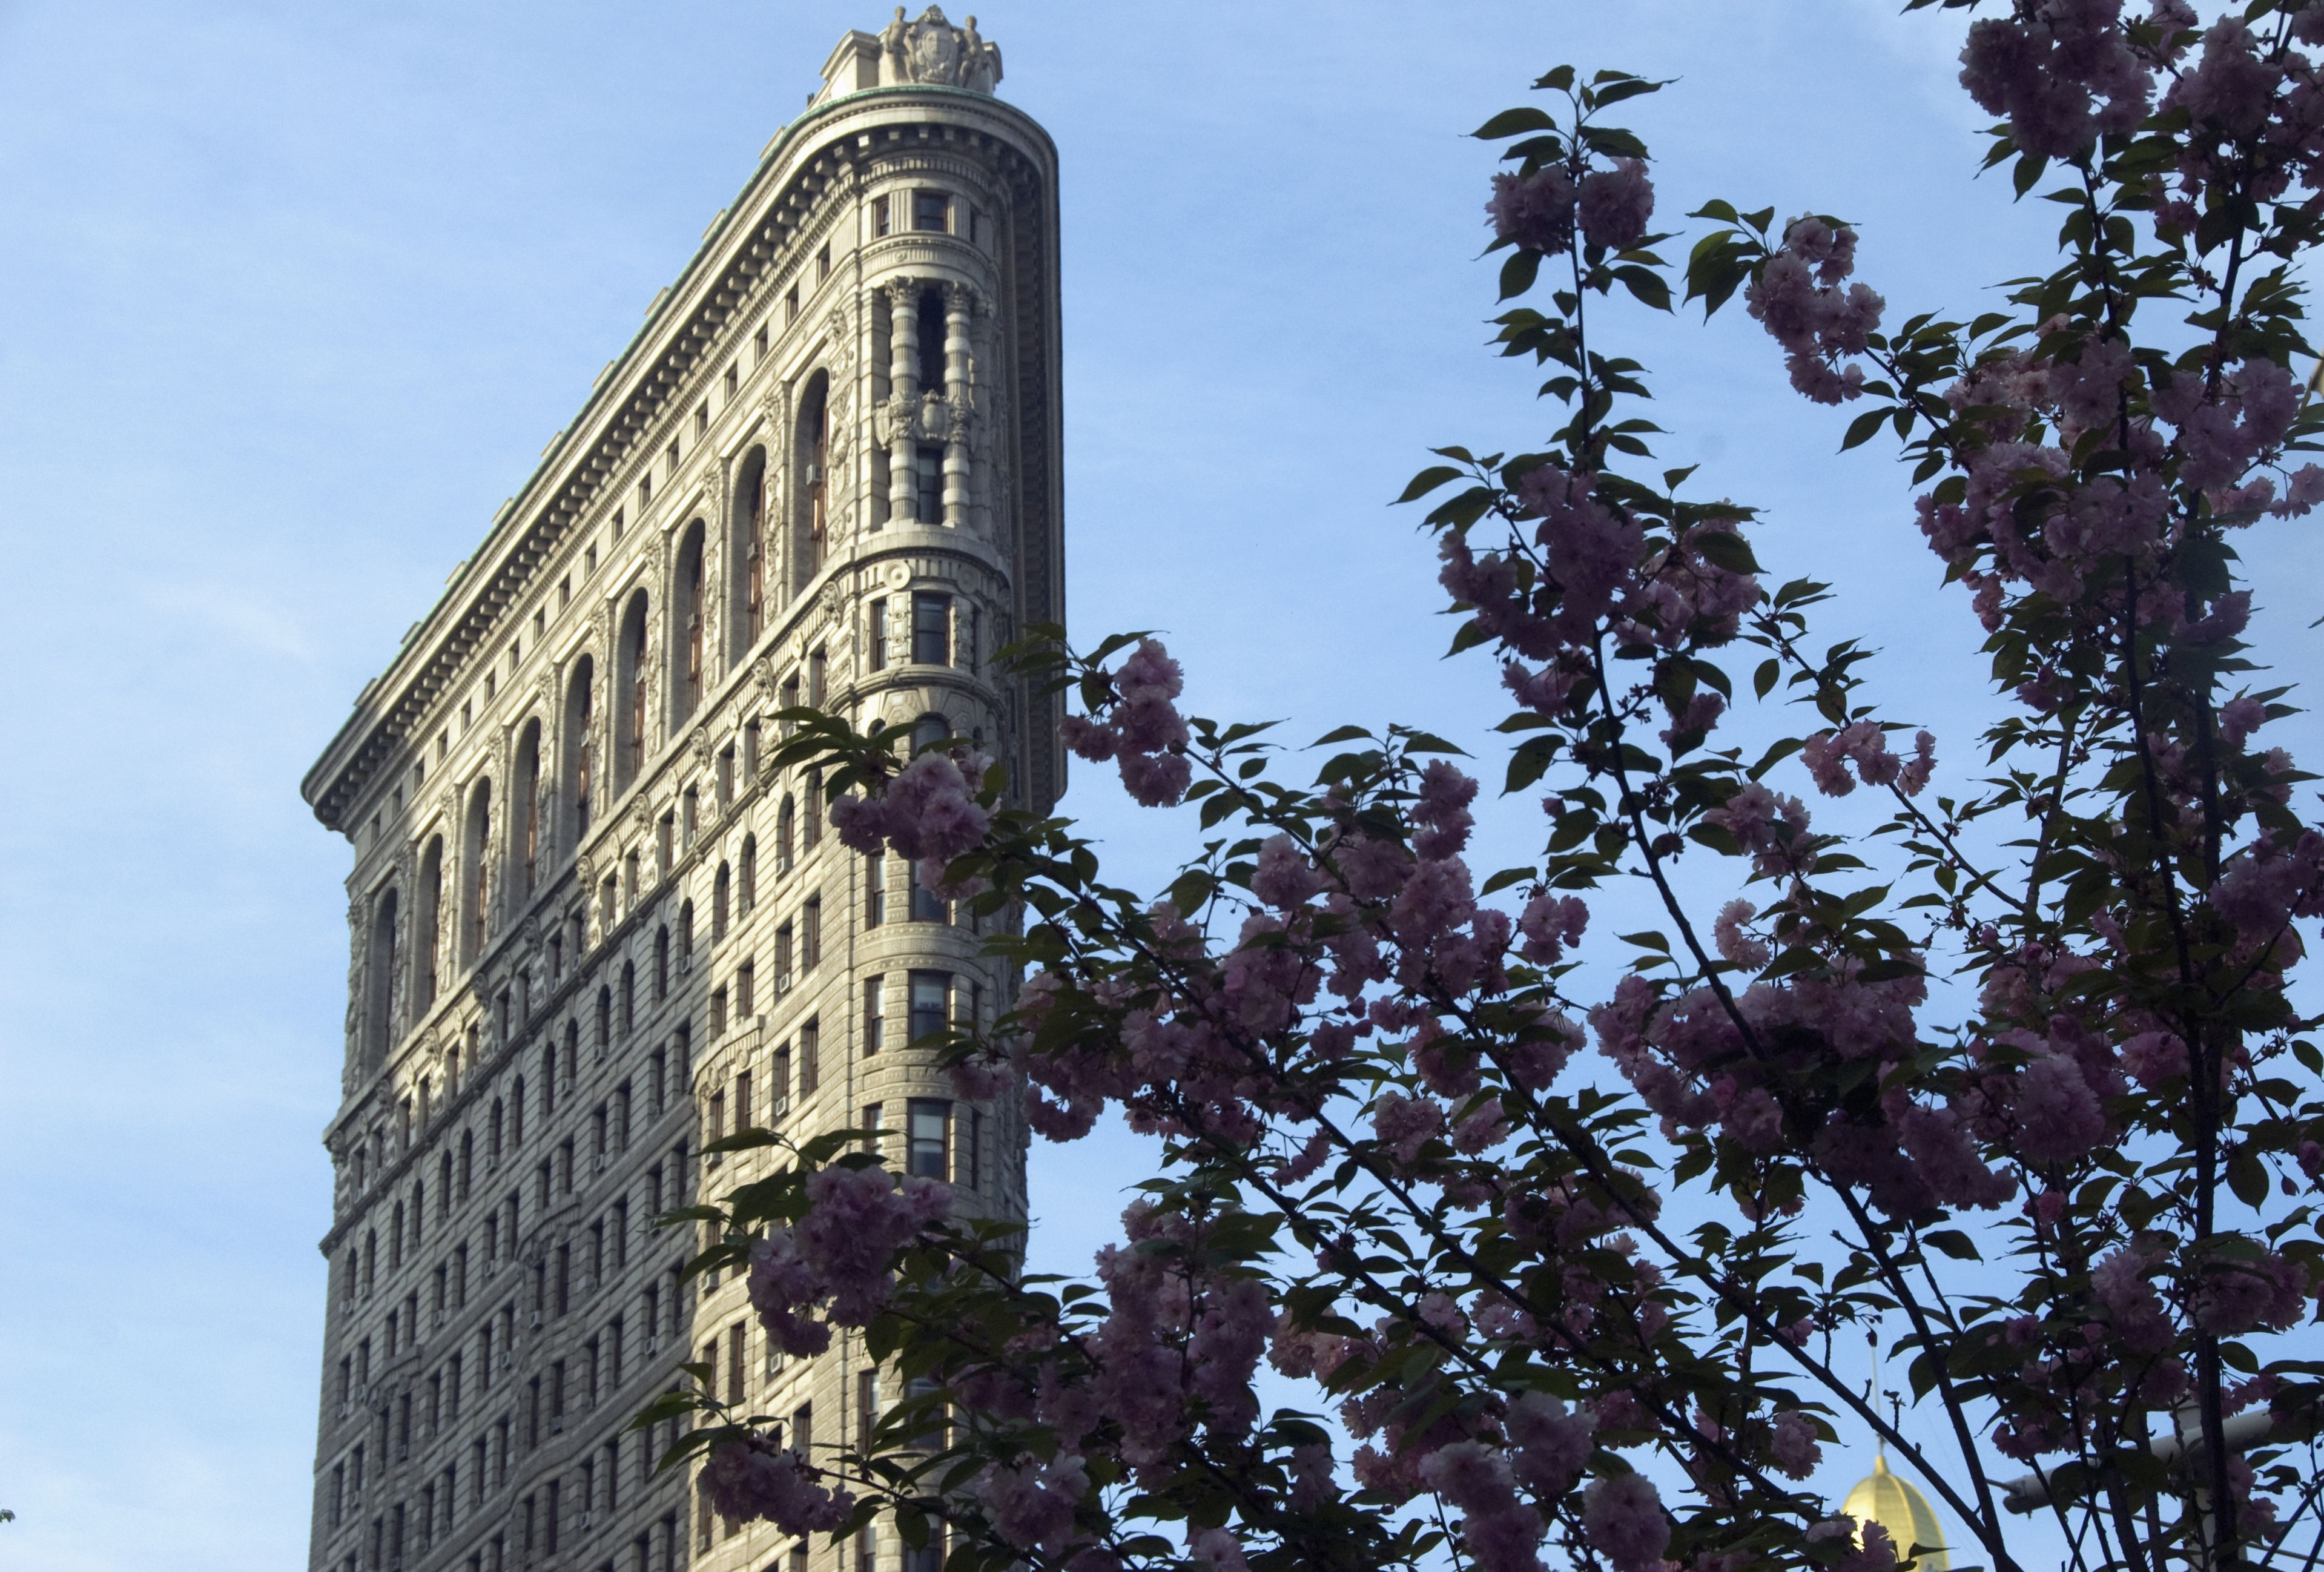 tall, thin, masonry high rise building, ornate, behind the branches of a tree